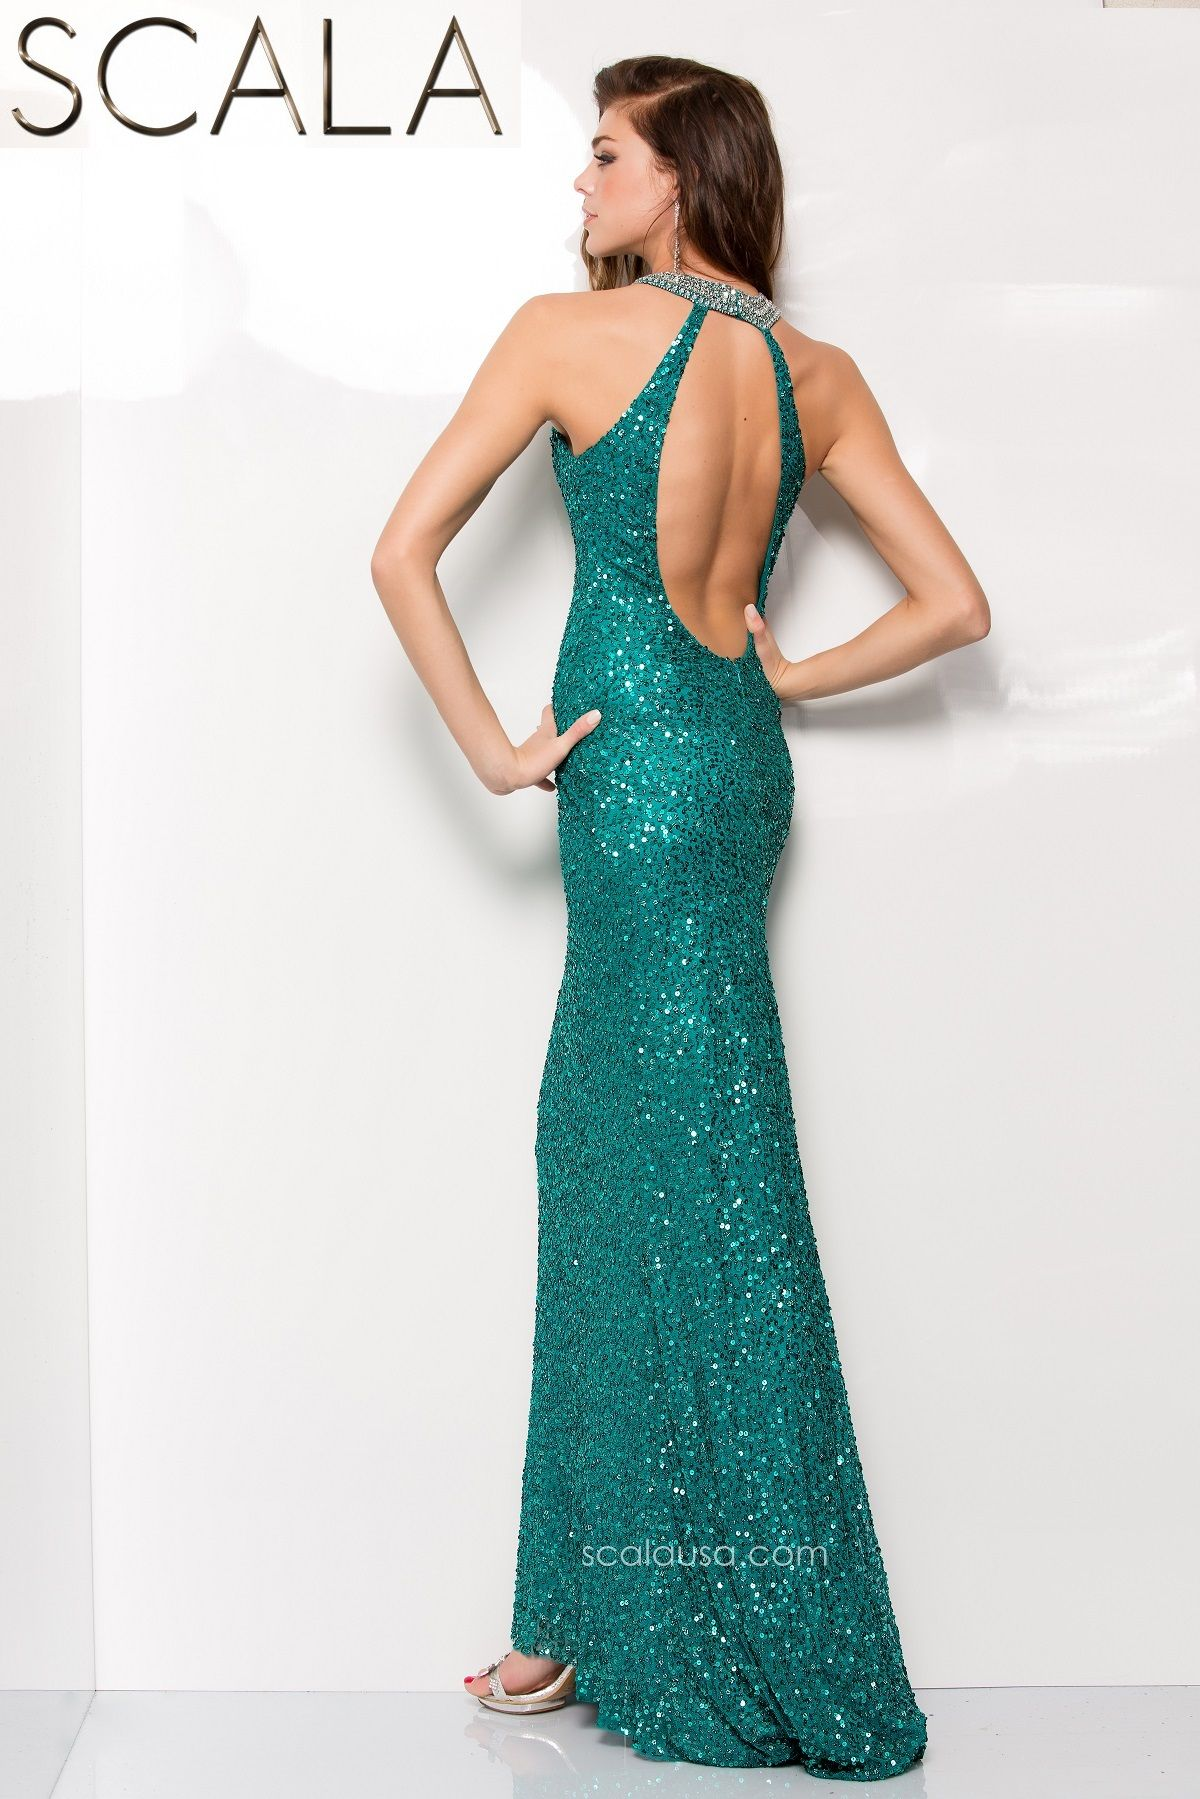 SCALA style 48444 Teal. #Prom2K15 #Spring2015 #Prom2015 #Dress #Gown ...